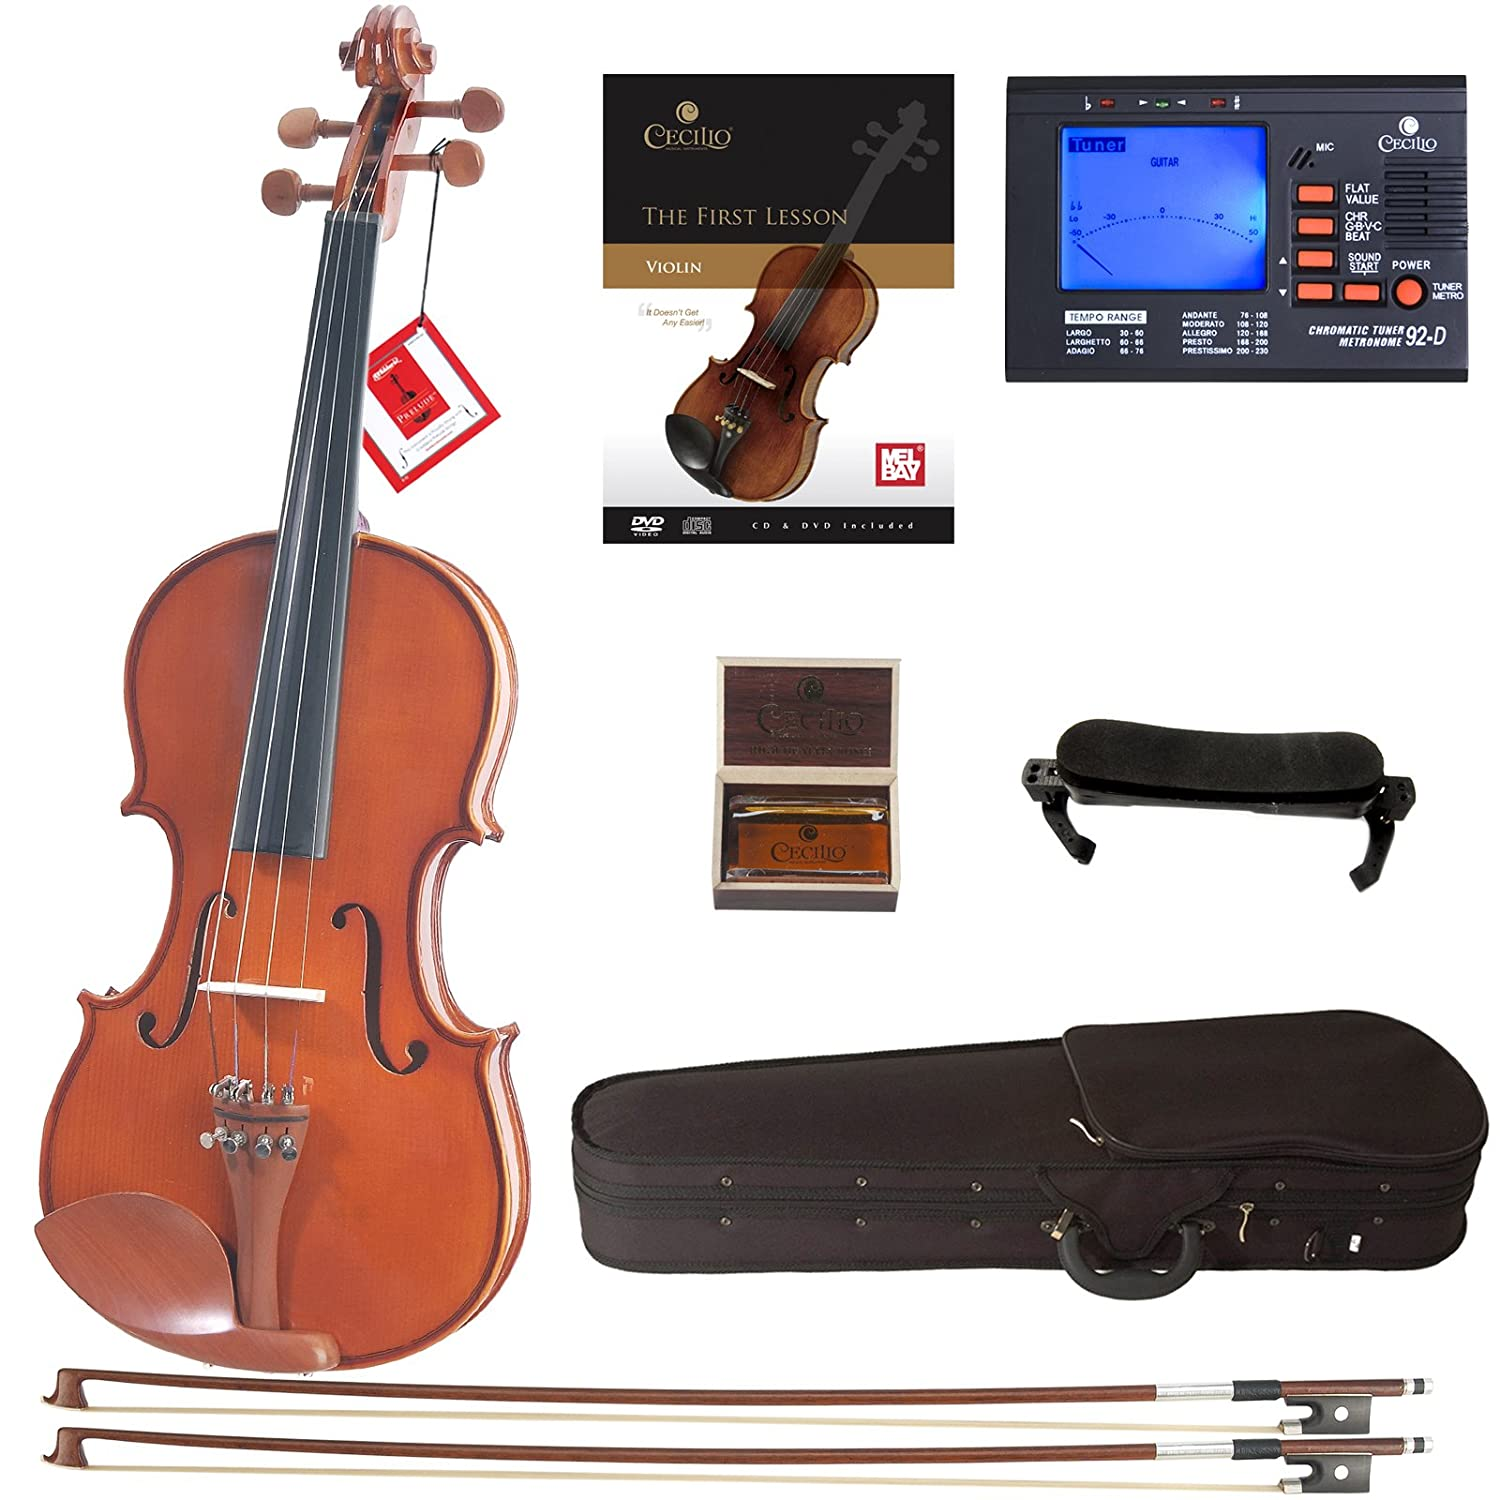 Cecilio CVN-200 Solidwood Violin with D'Addario Prelude Strings, Size 1/2